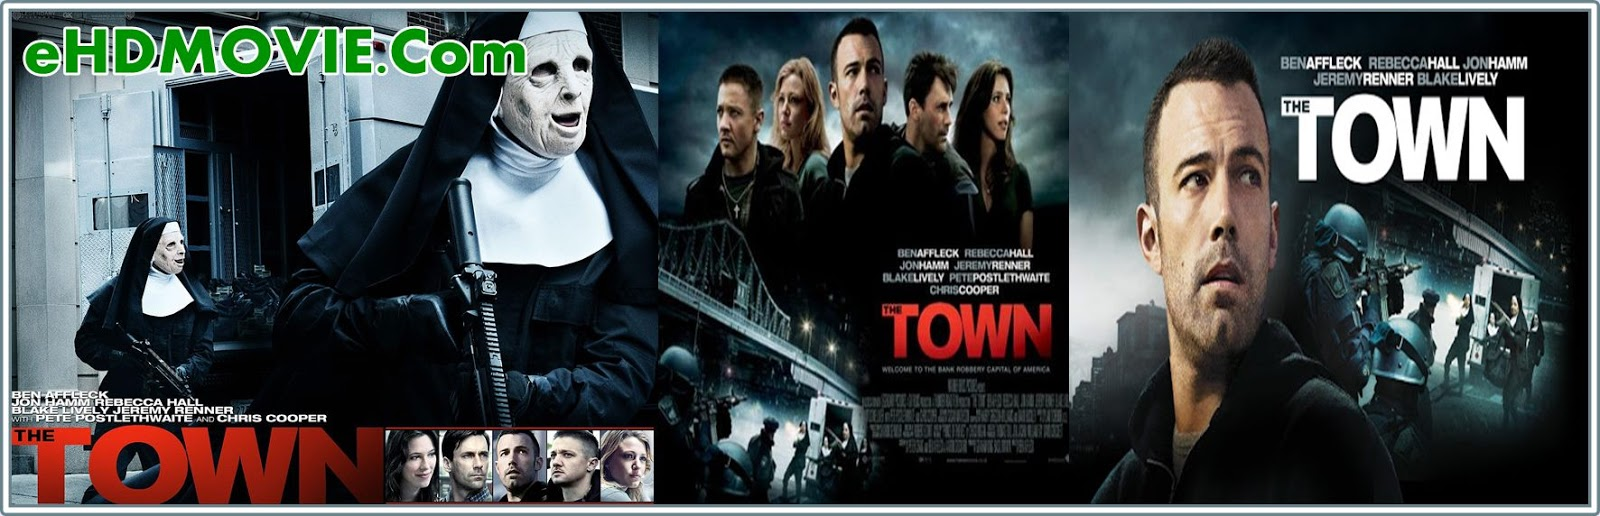 The Town 2010 Full Movie English 720p - 480p ORG BRRip 500MB - 1.1GB ESubs Free Download